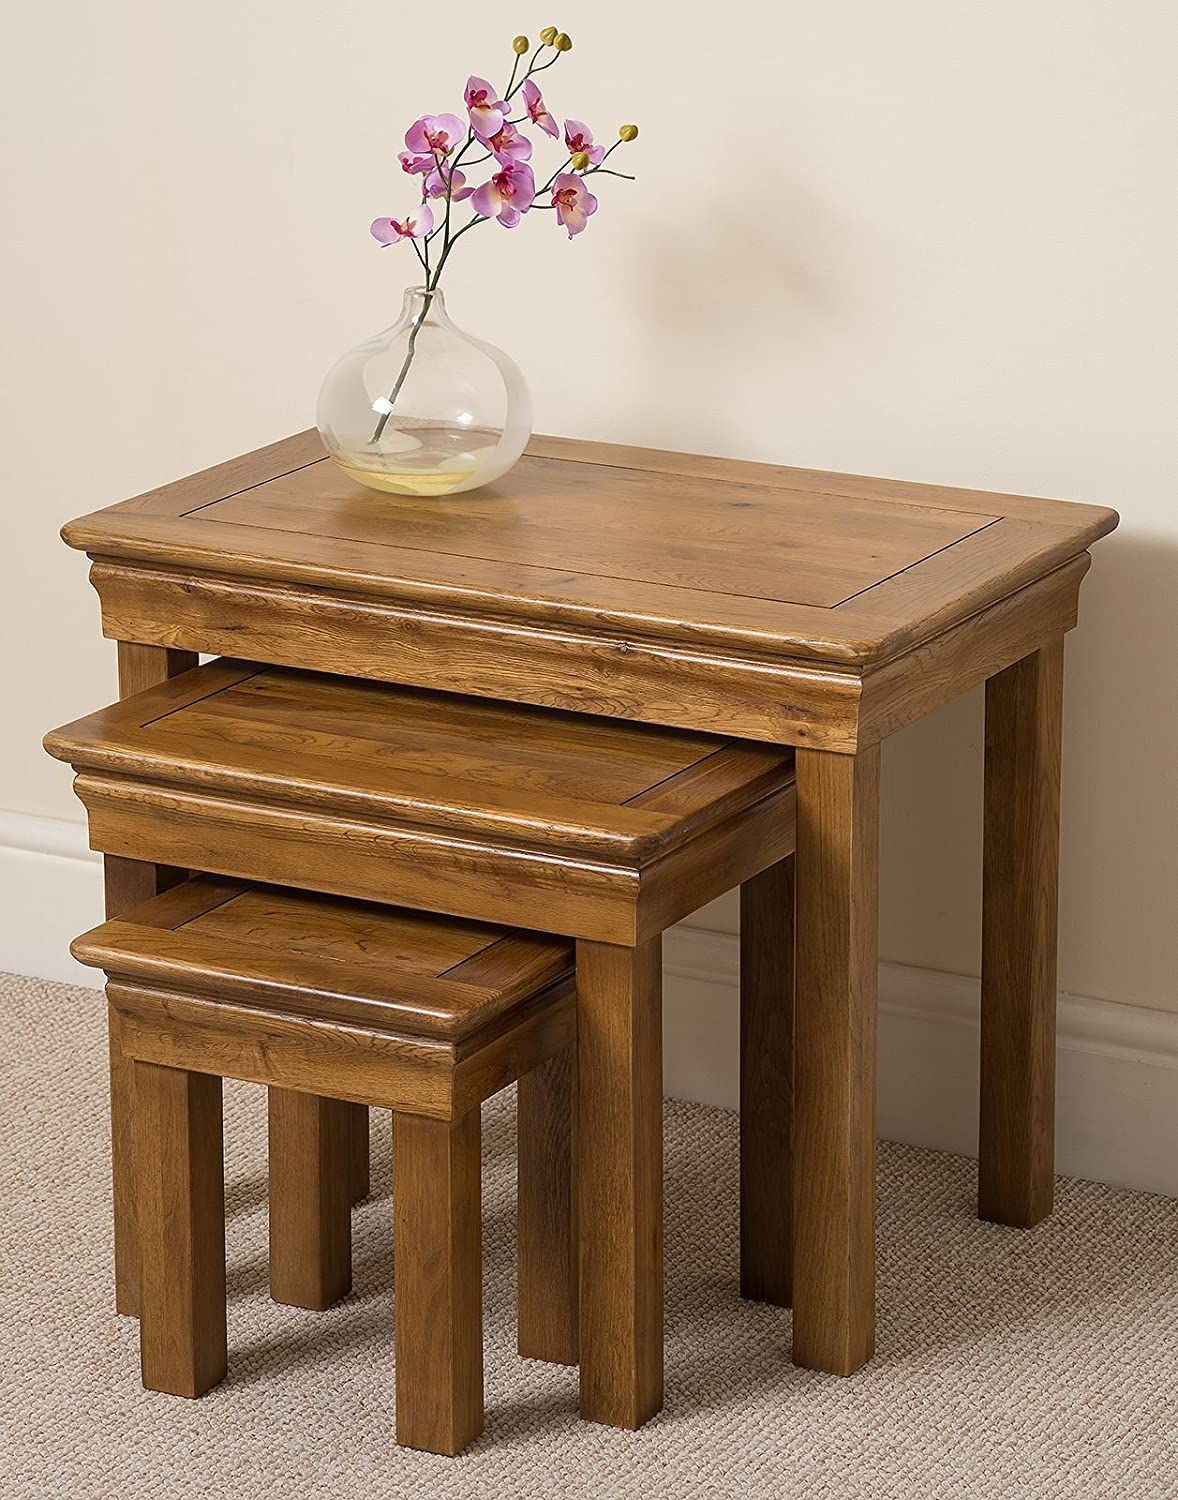 FRENCH RUSTIC SOLID OAK NEST OF SIDE TABLES Amazoncouk - Rustic oak dressing table